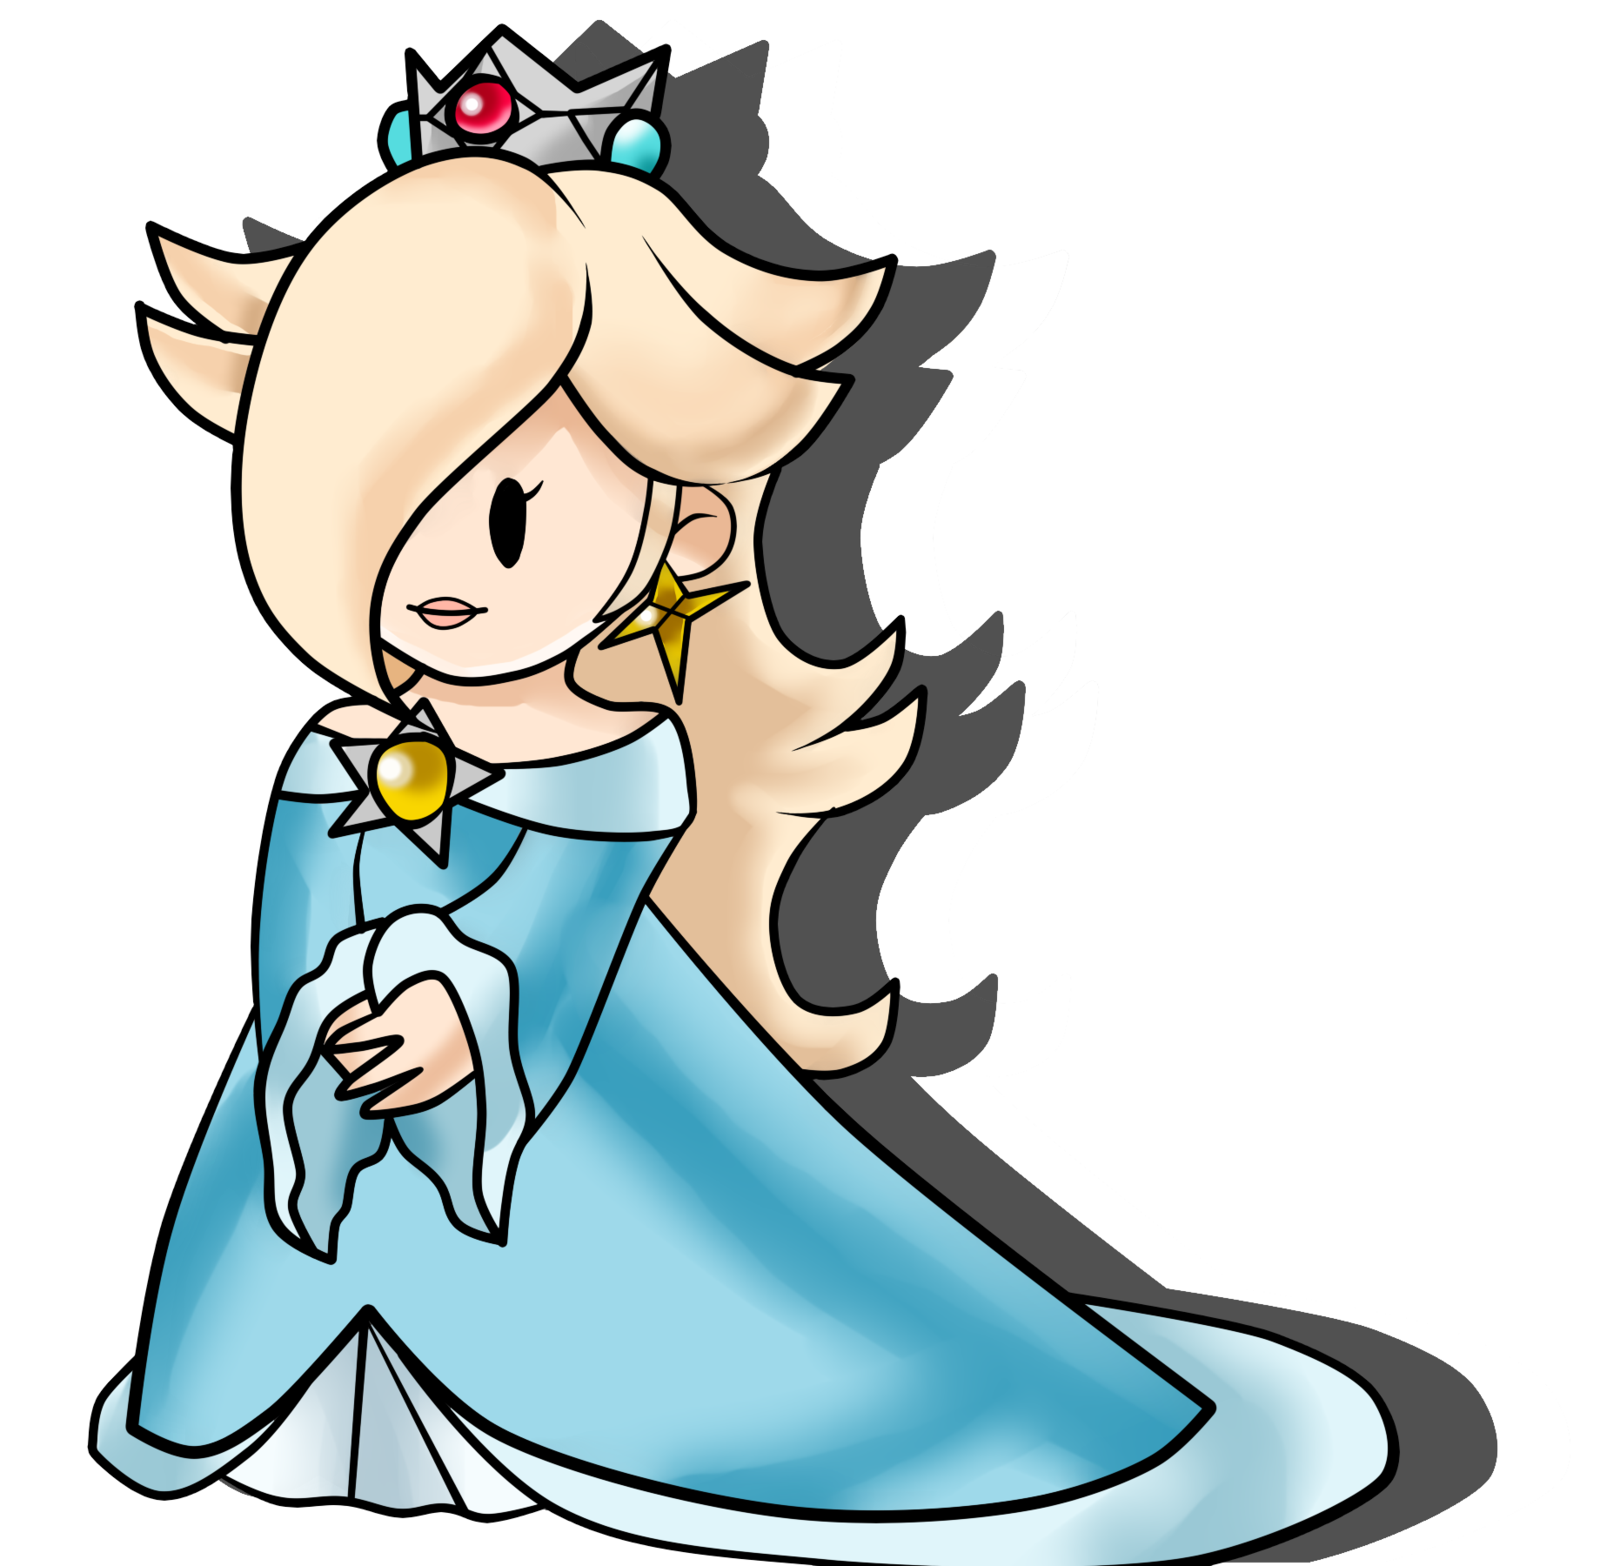 Rosalina drawing epic. Paper by crystaliszelda on